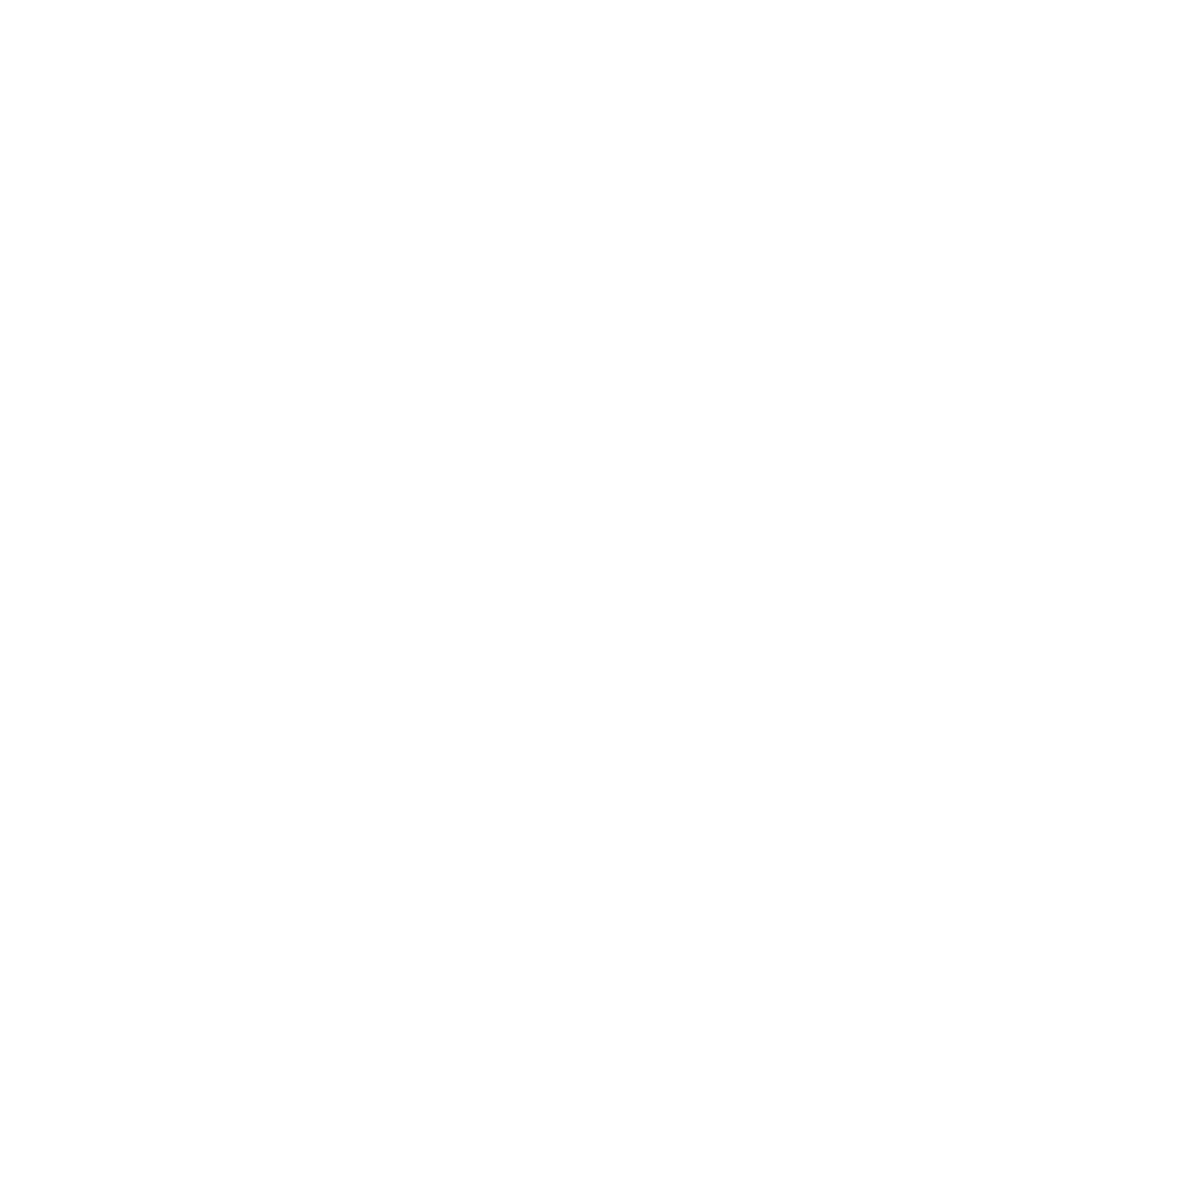 <b>Broadband Compare Awards 2020</b><br>Enter the awards | Key dates for 2020